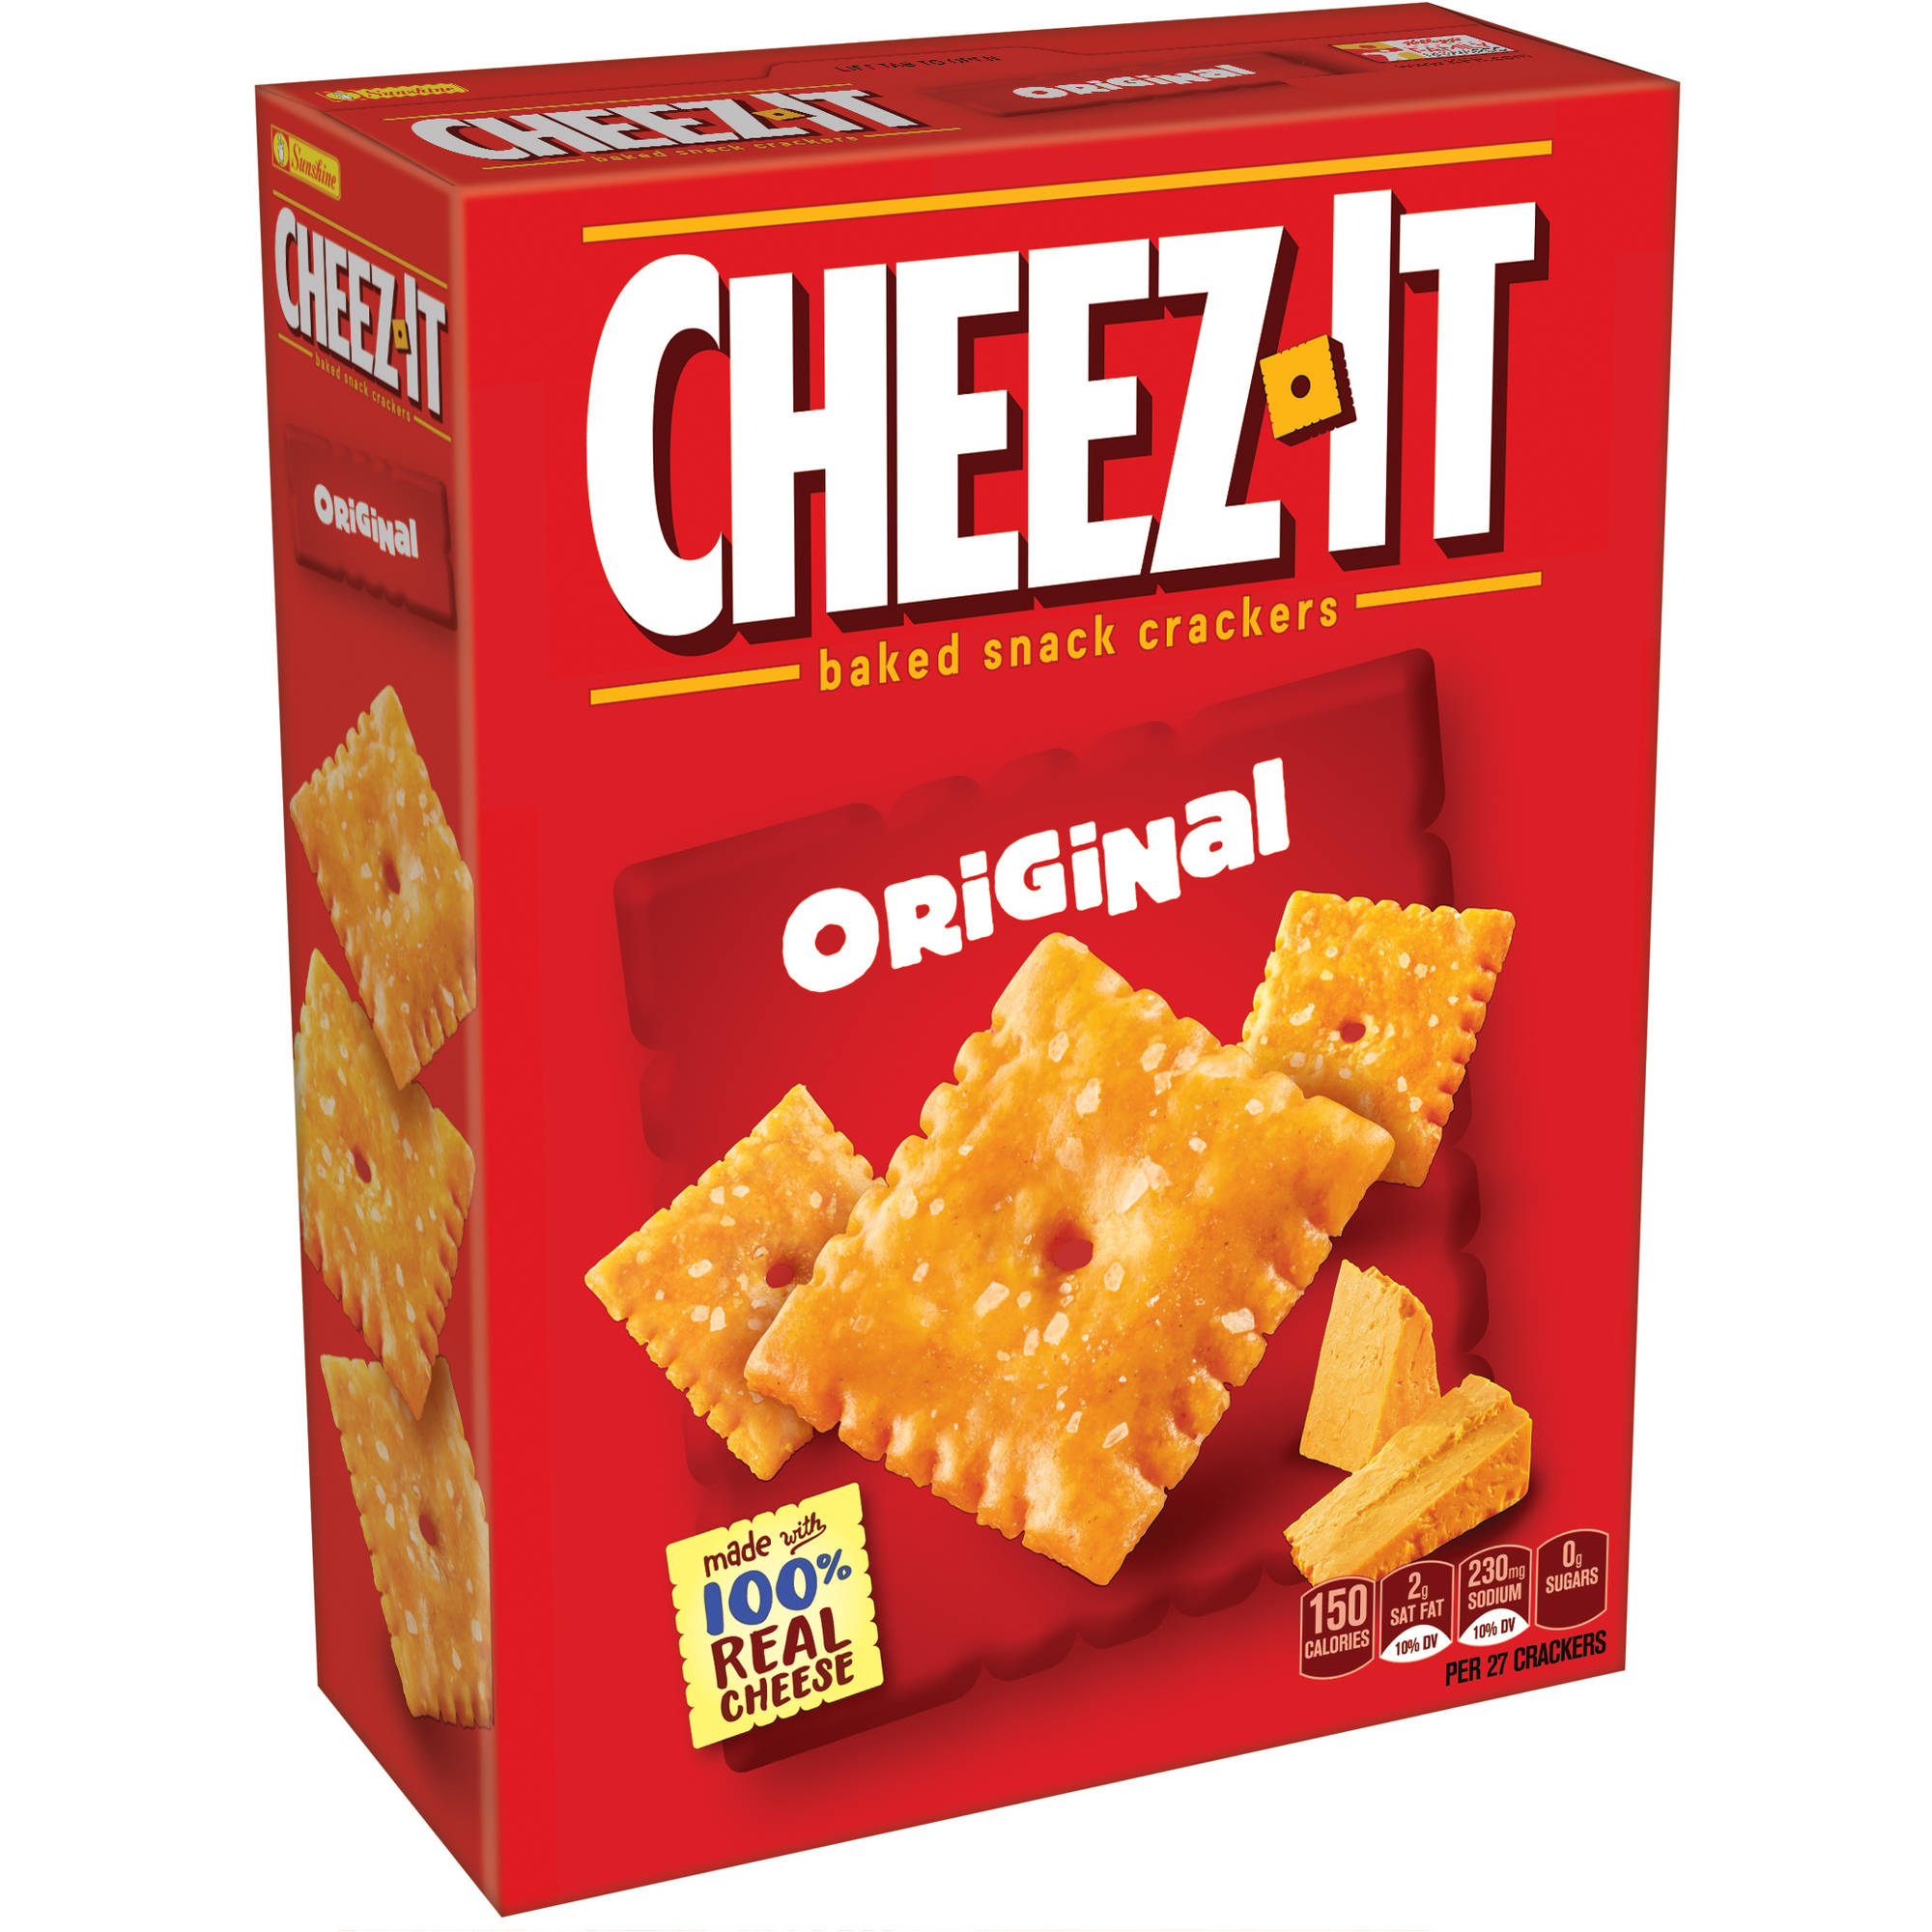 Cheez-It Original Baked Snack Crackers, box of 7 oz by Sunshine Biscuits, LLC